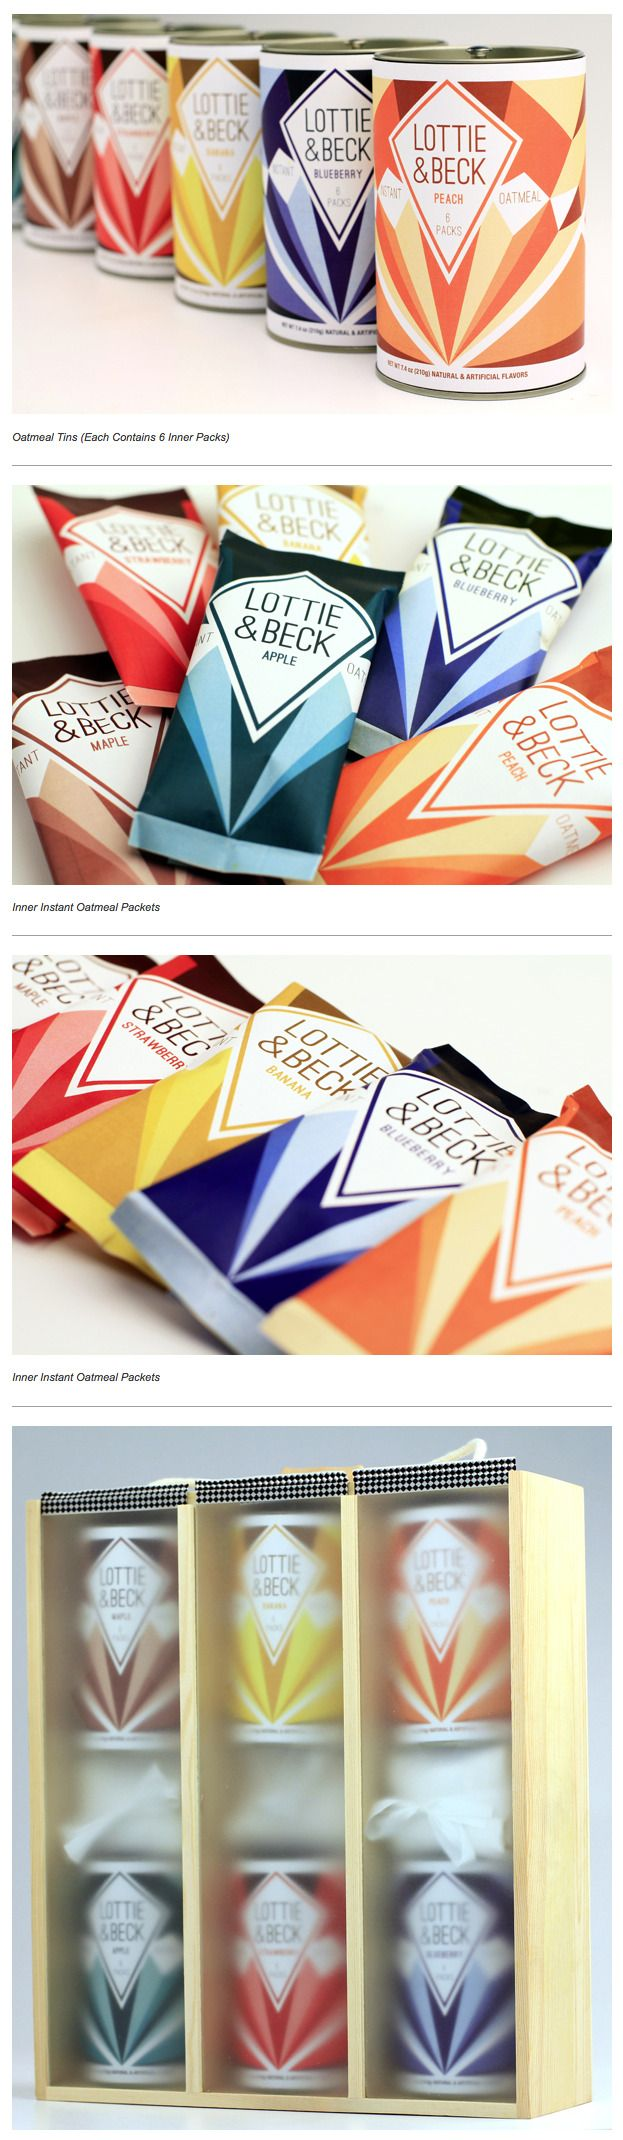 News programs and projects of jagisa paper bags - Lottie Beck Oatmeal Packaging